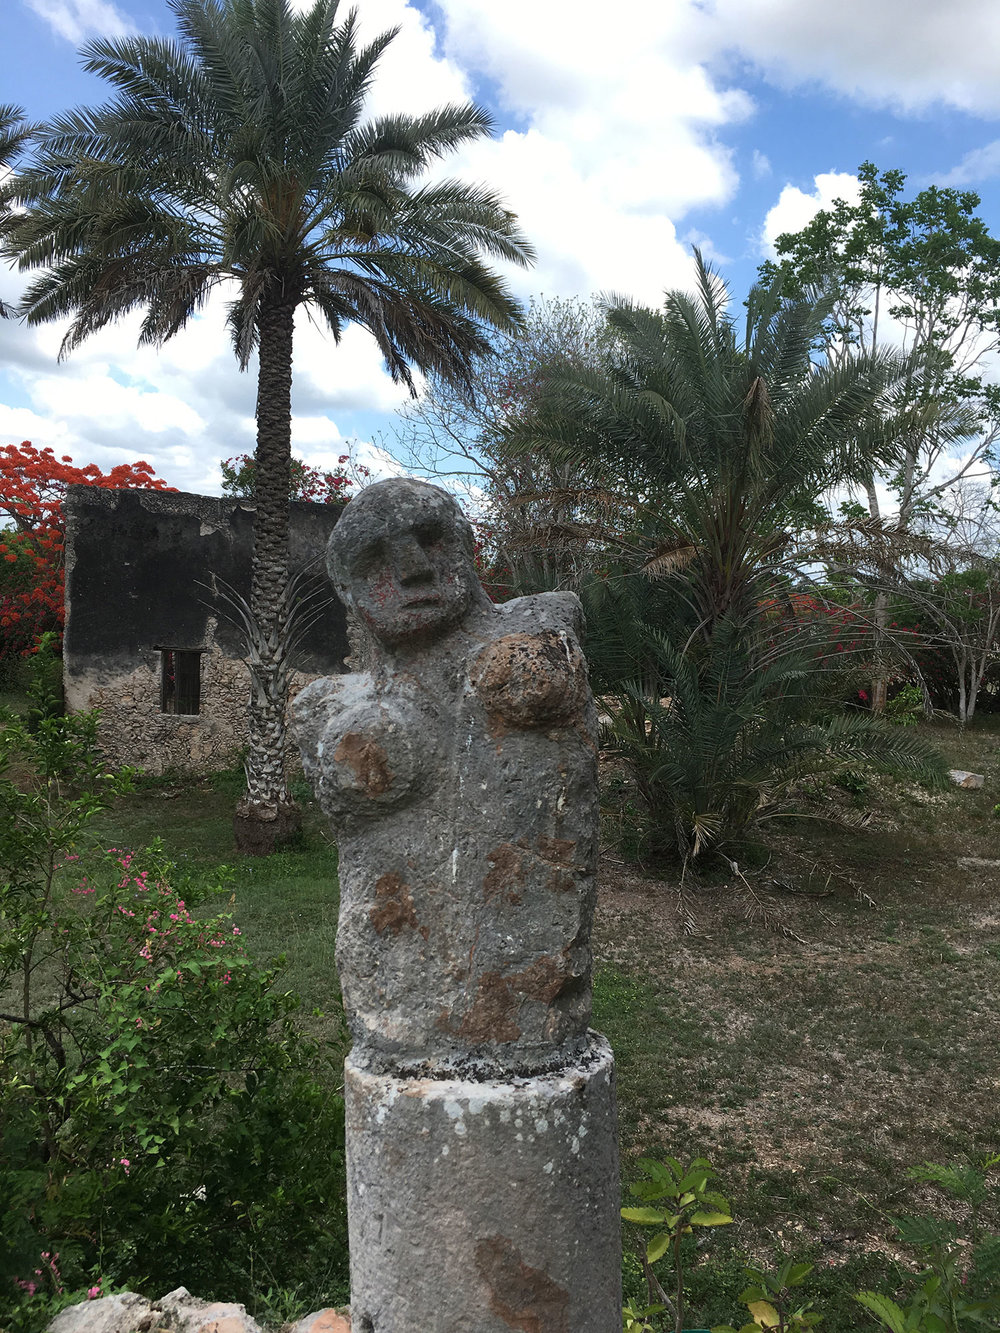 This sculpture looked to me like a guardian of the hacienda.